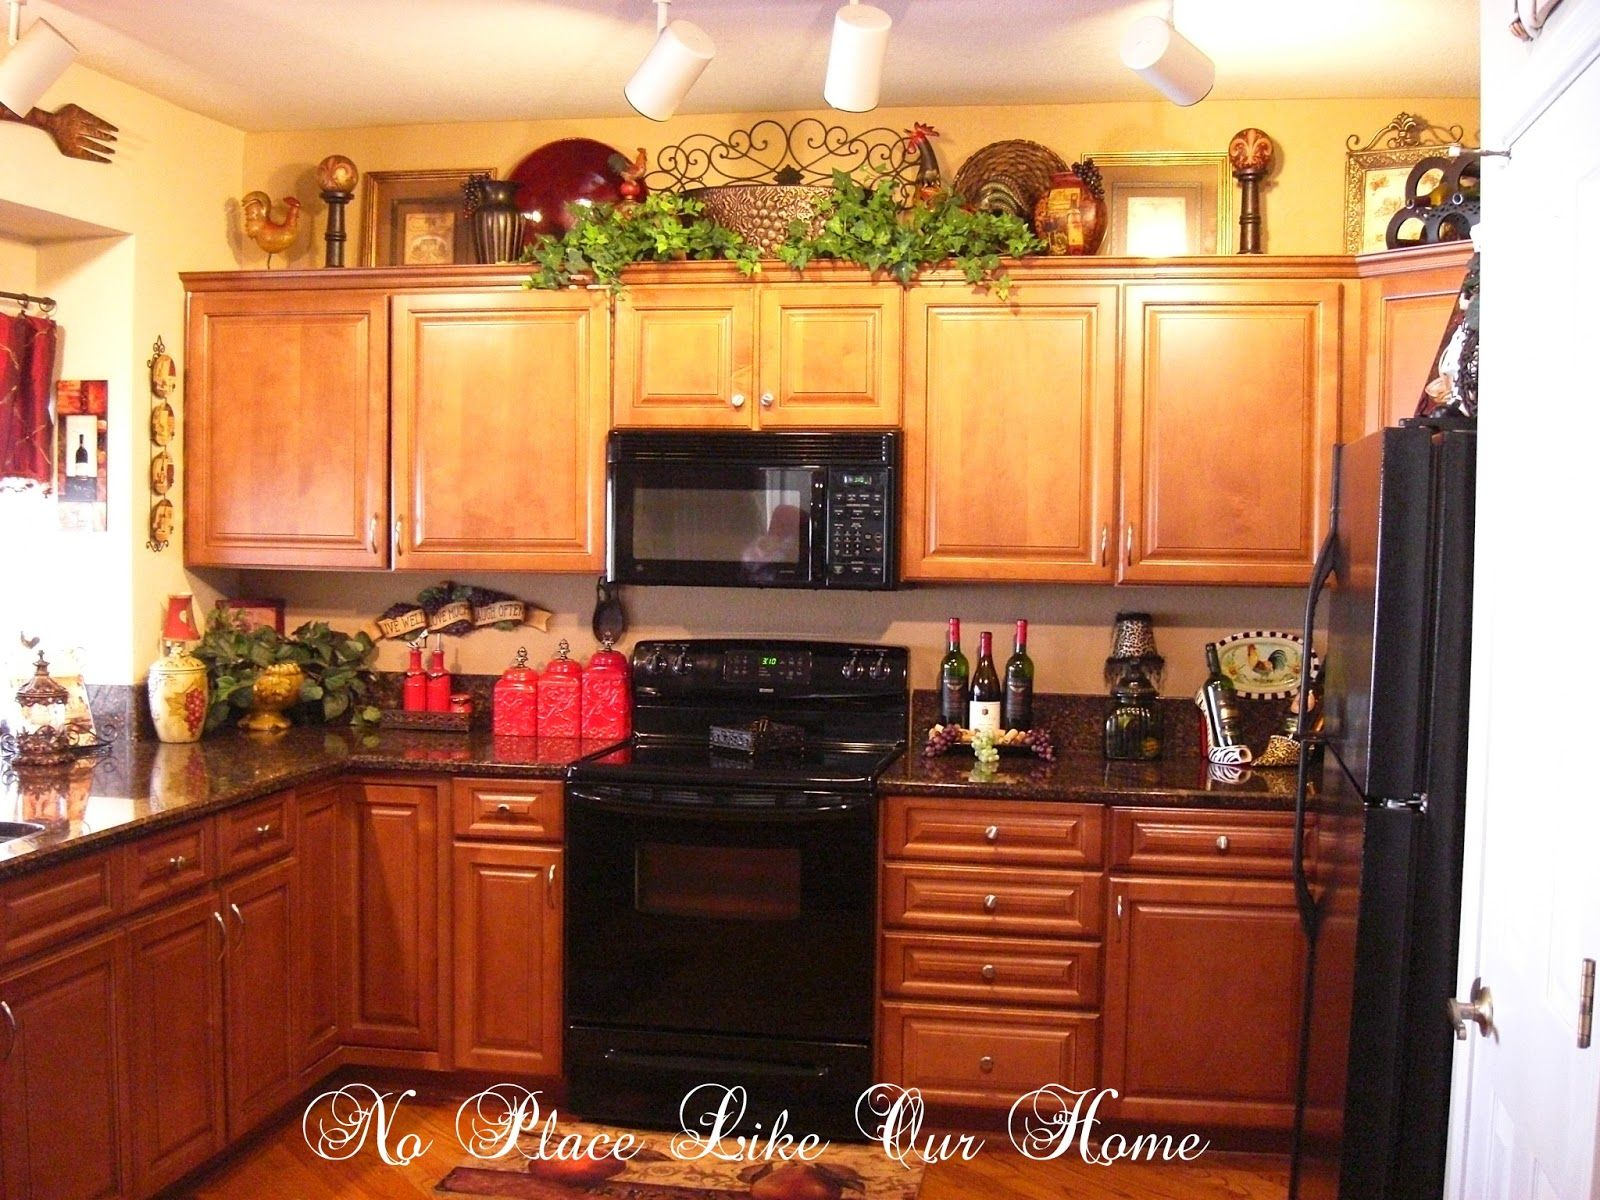 Decorating above kitchen cabinets tuscany heres a closer look at the top of the cabinets everything you see